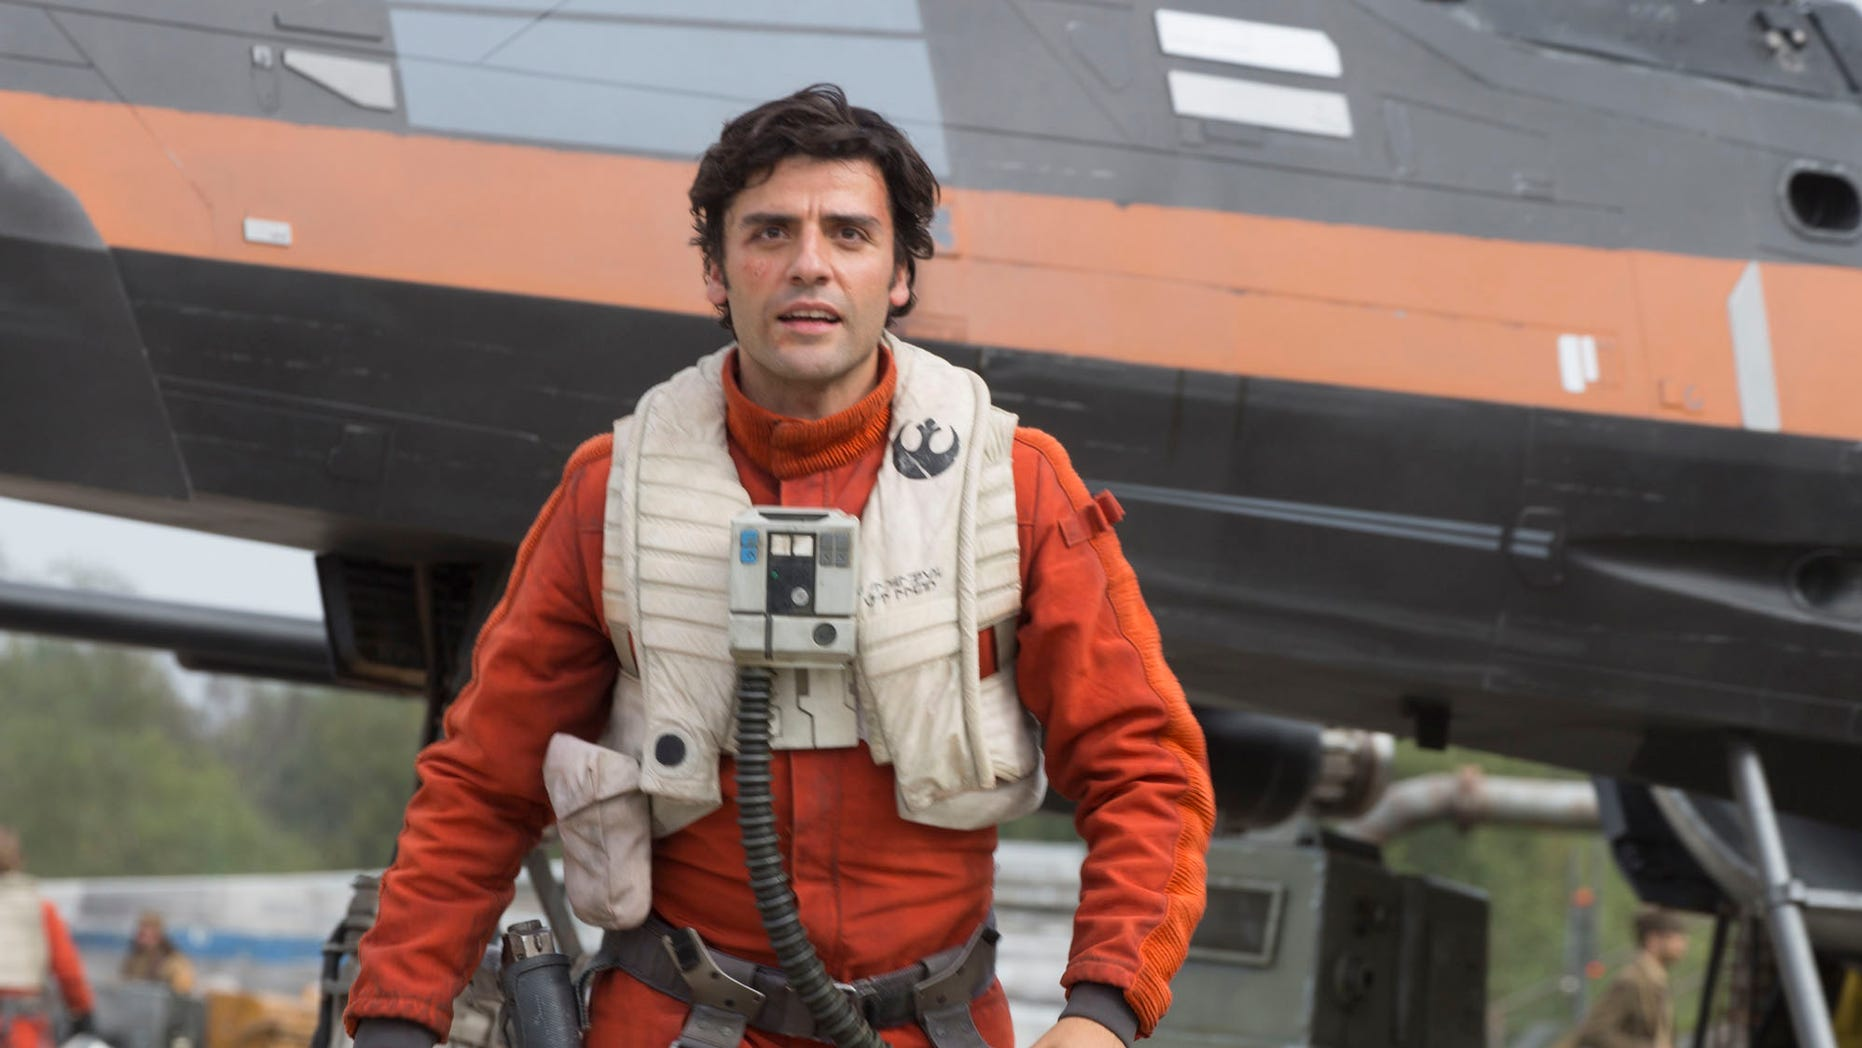 """This photo provided by Disney/Lucasfilm shows Oscar Isaac as Poe Dameron in a scene from """"Star Wars: The Force Awakens,"""" directed by J. J. Abrams. The new film releases in U.S. theaters on Dec. 18, 2015. (David James/Disney/Lucasfilm via AP)"""